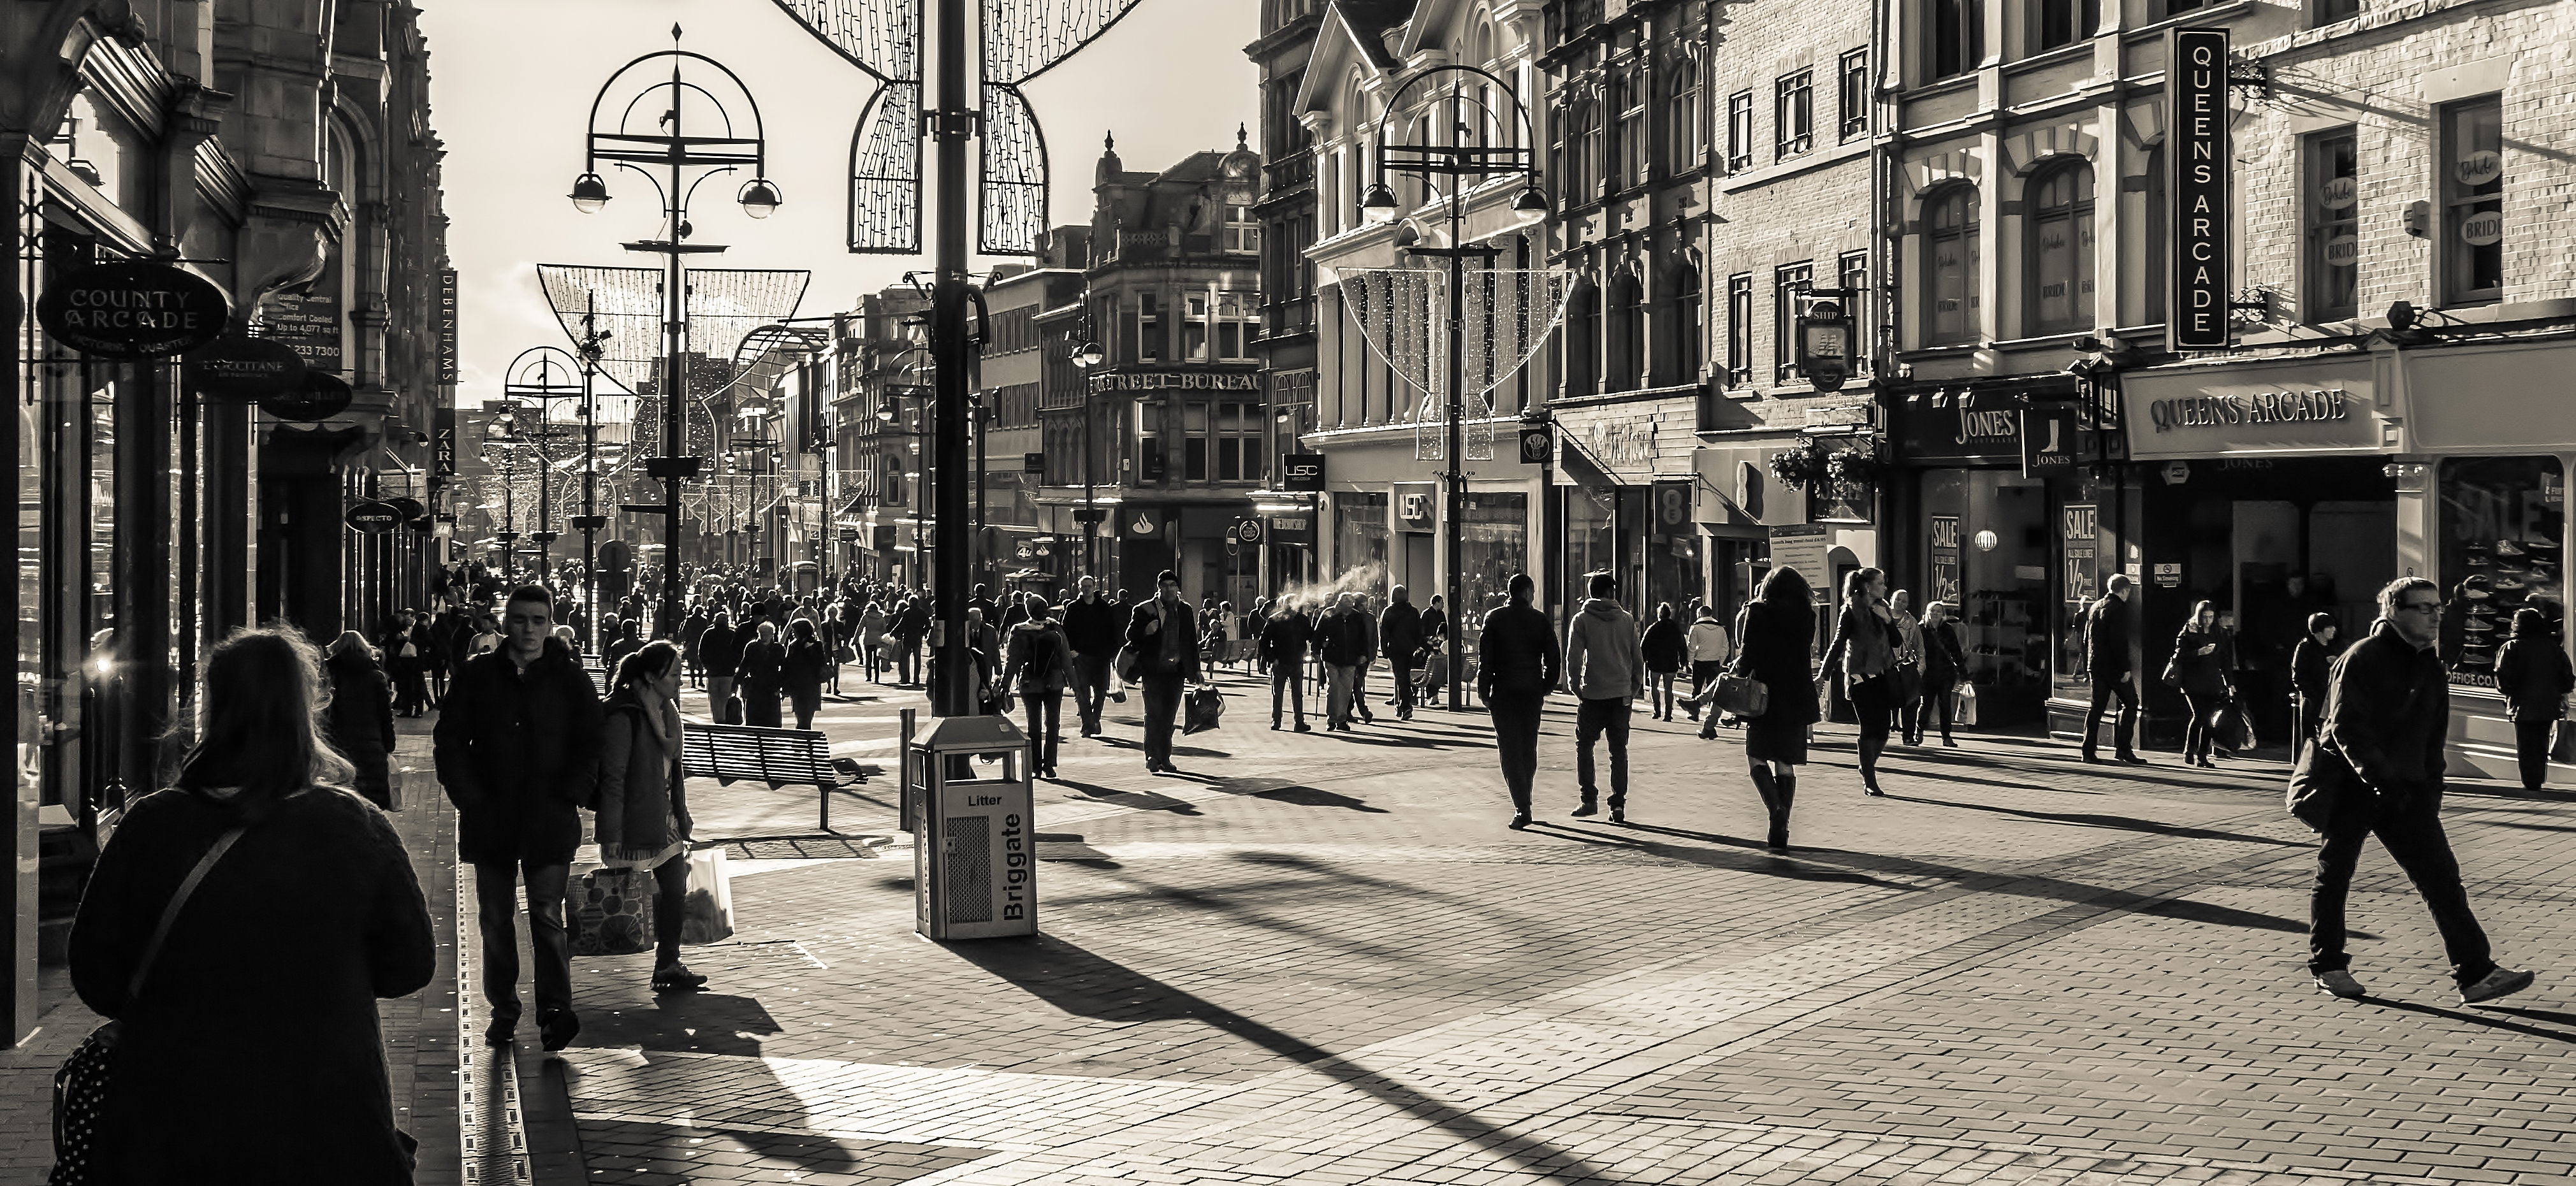 Lunchtime on Briggate